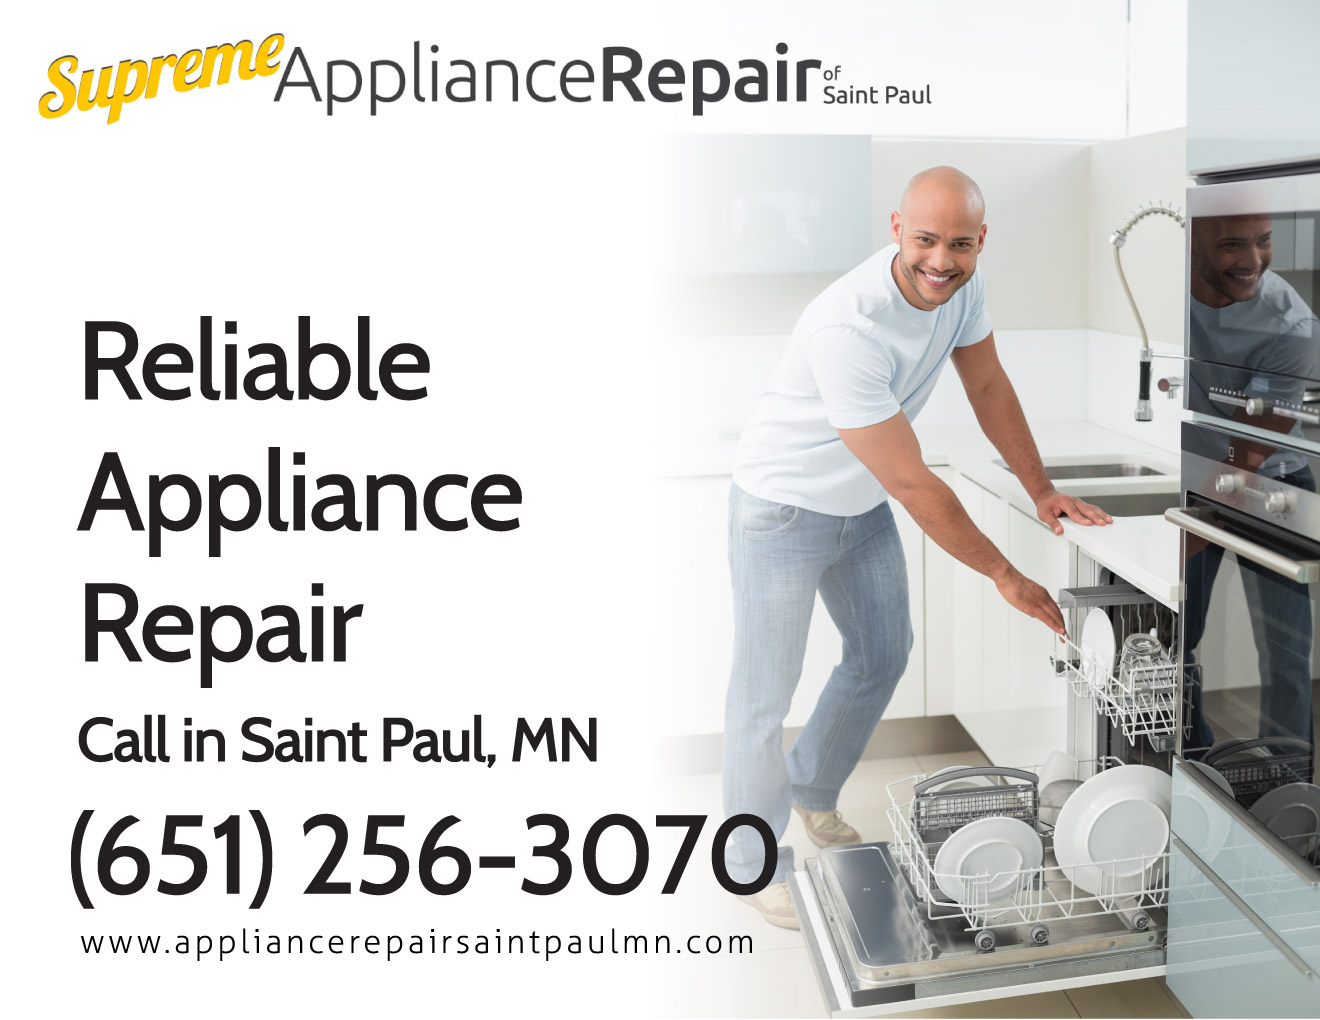 Supreme Appliance Repair Of Saint Paul 651 256 3070